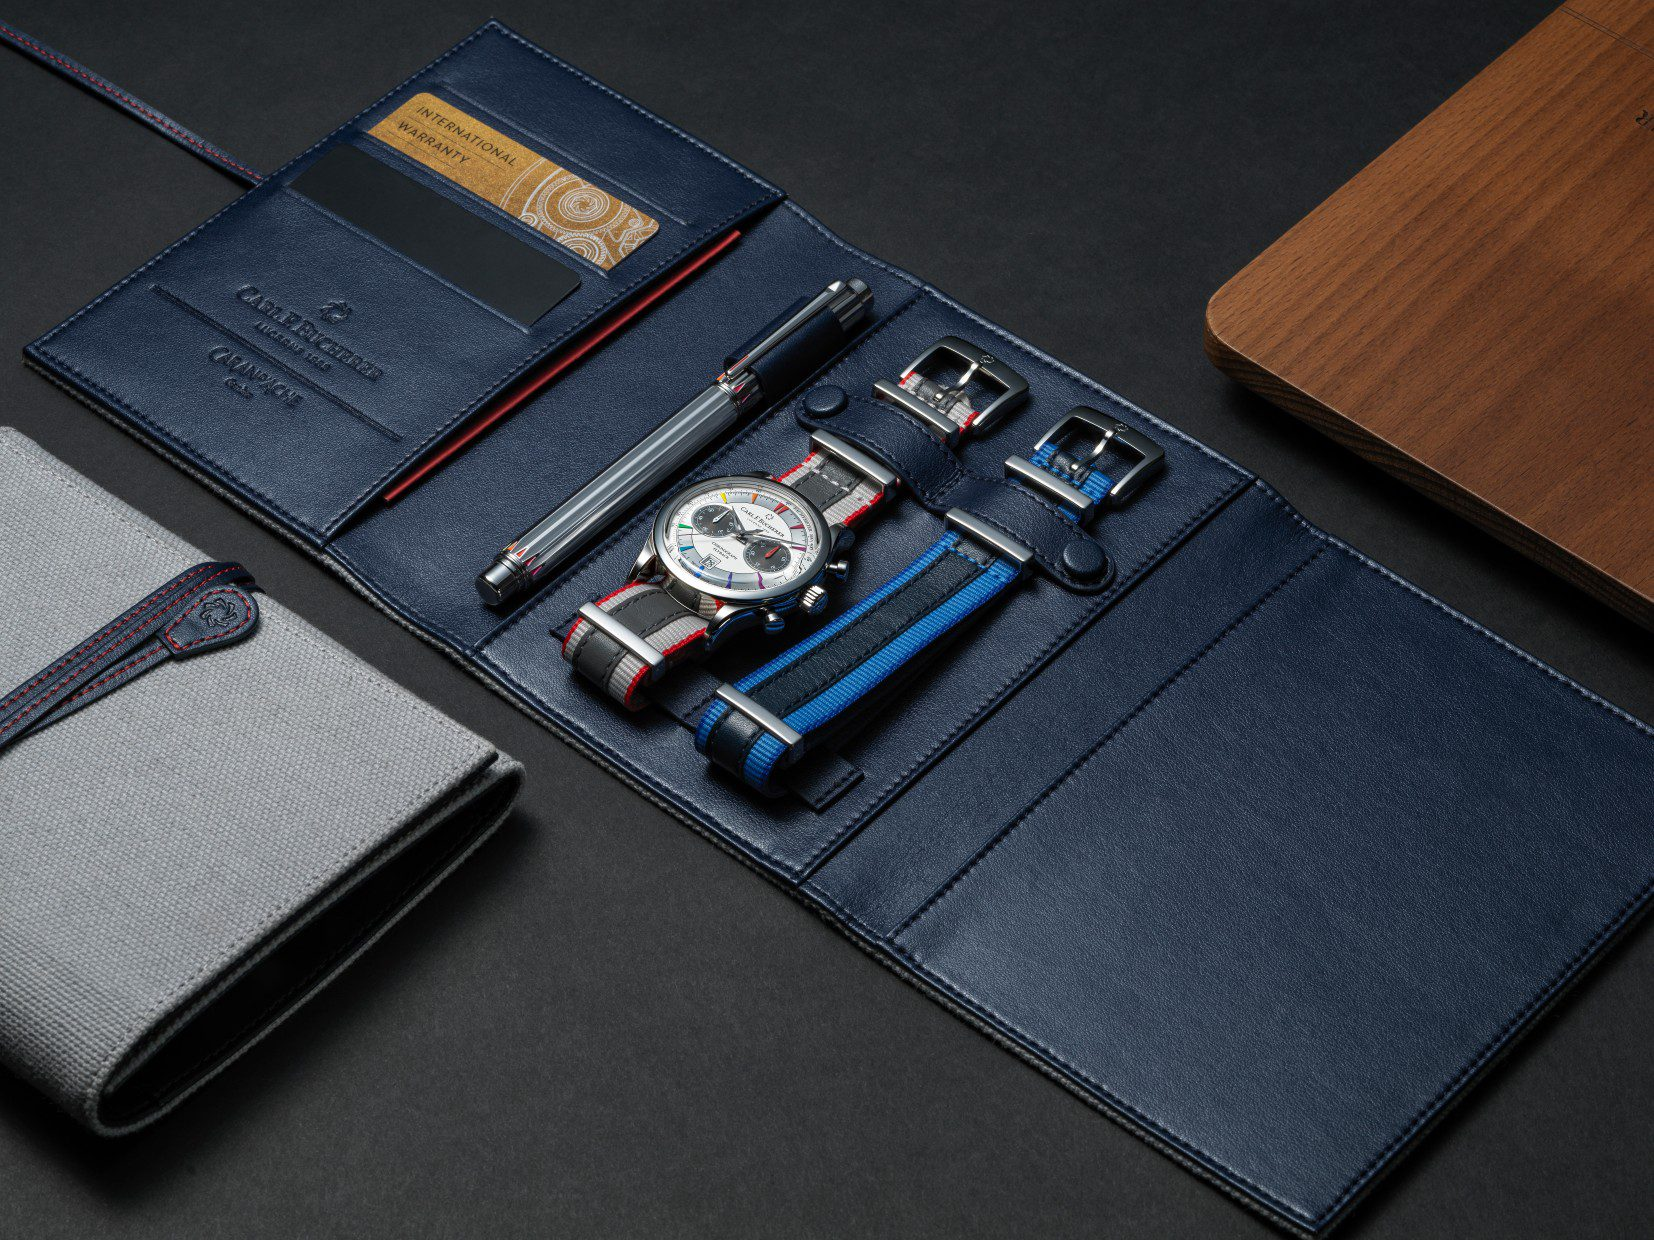 Carl F. Bucherer Manero Flyback Signature watch and the Caran d'Ache Signature rollerball pen packaging